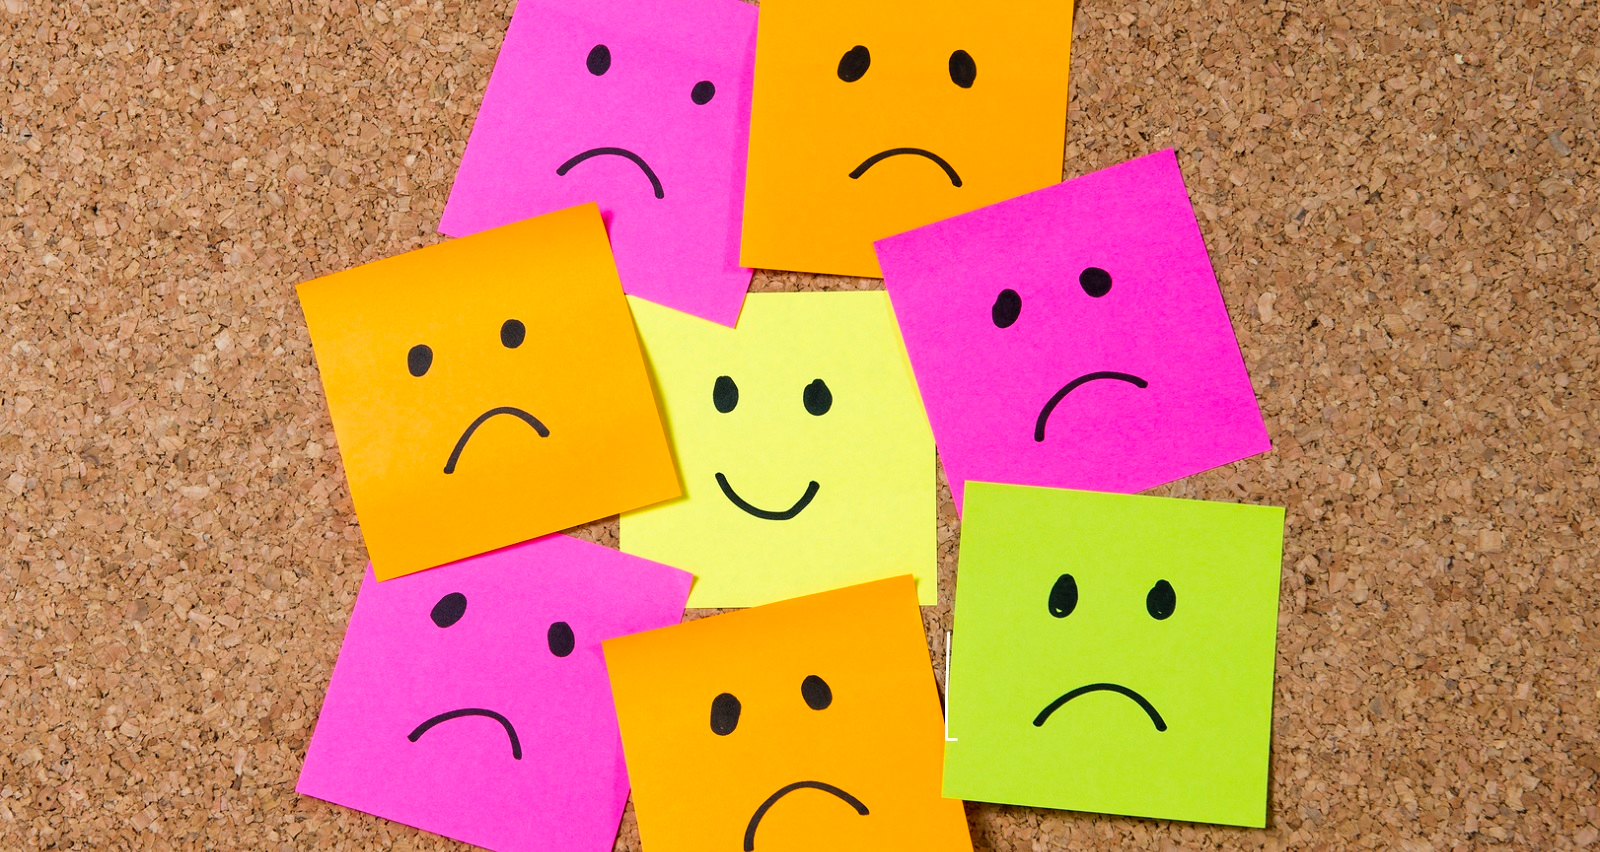 smiley post it note on corkboard happiness versus depression concept